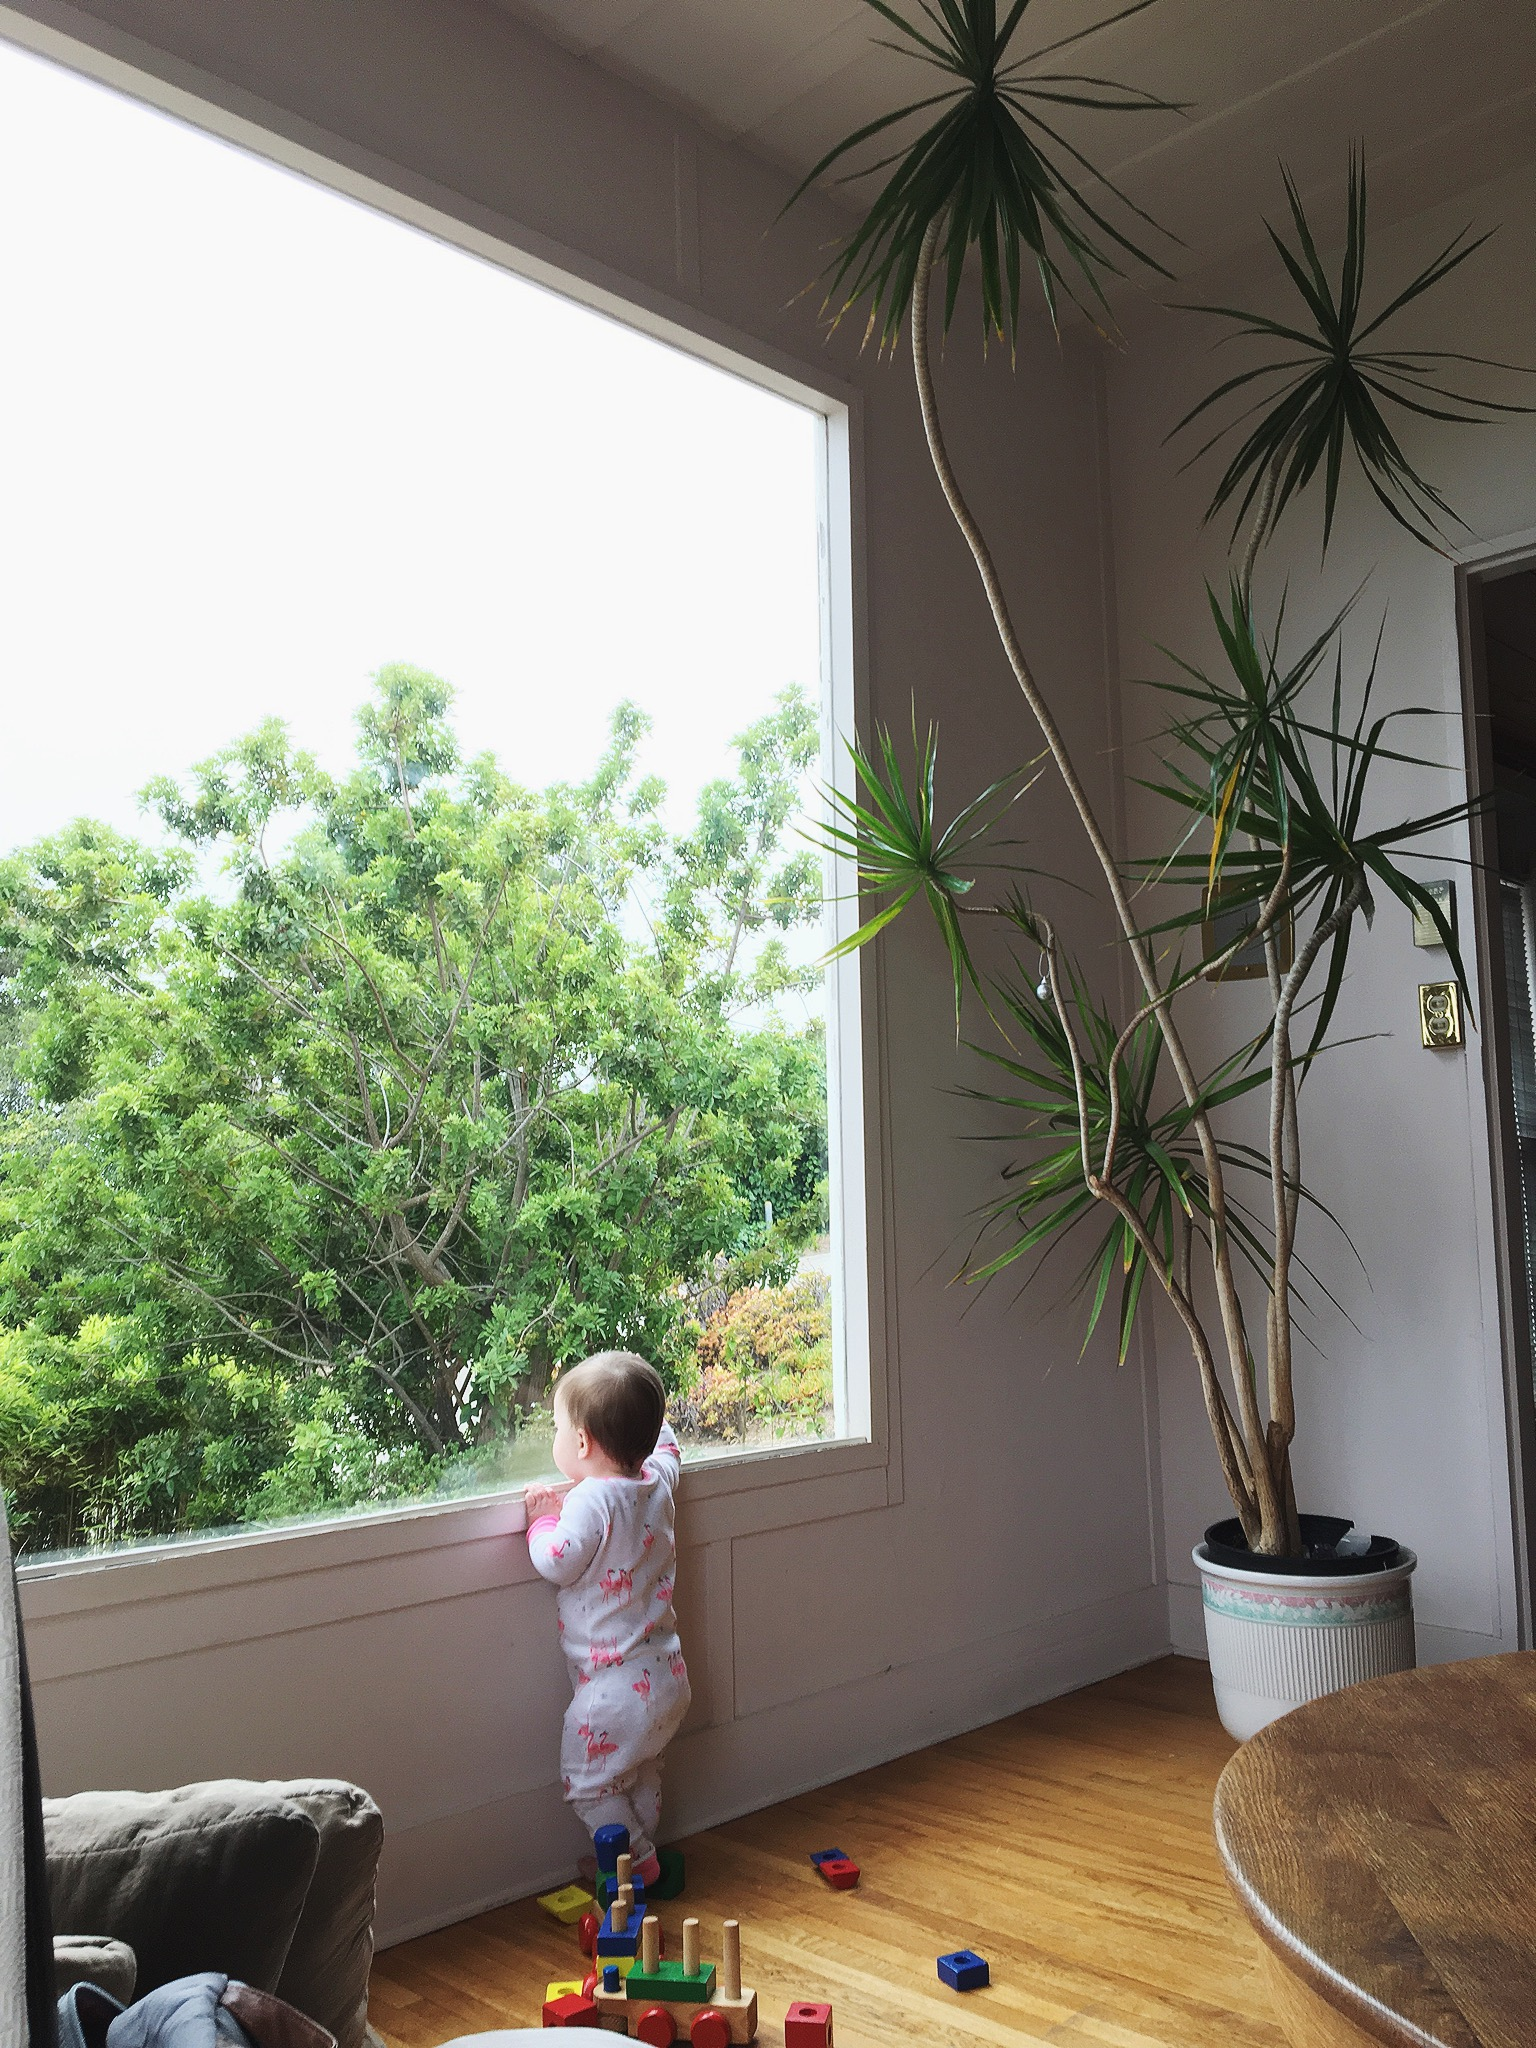 Even babies are drawn to what matters most–the simple, grand beauty of nature. Harriet looked out this window for long moments every day.